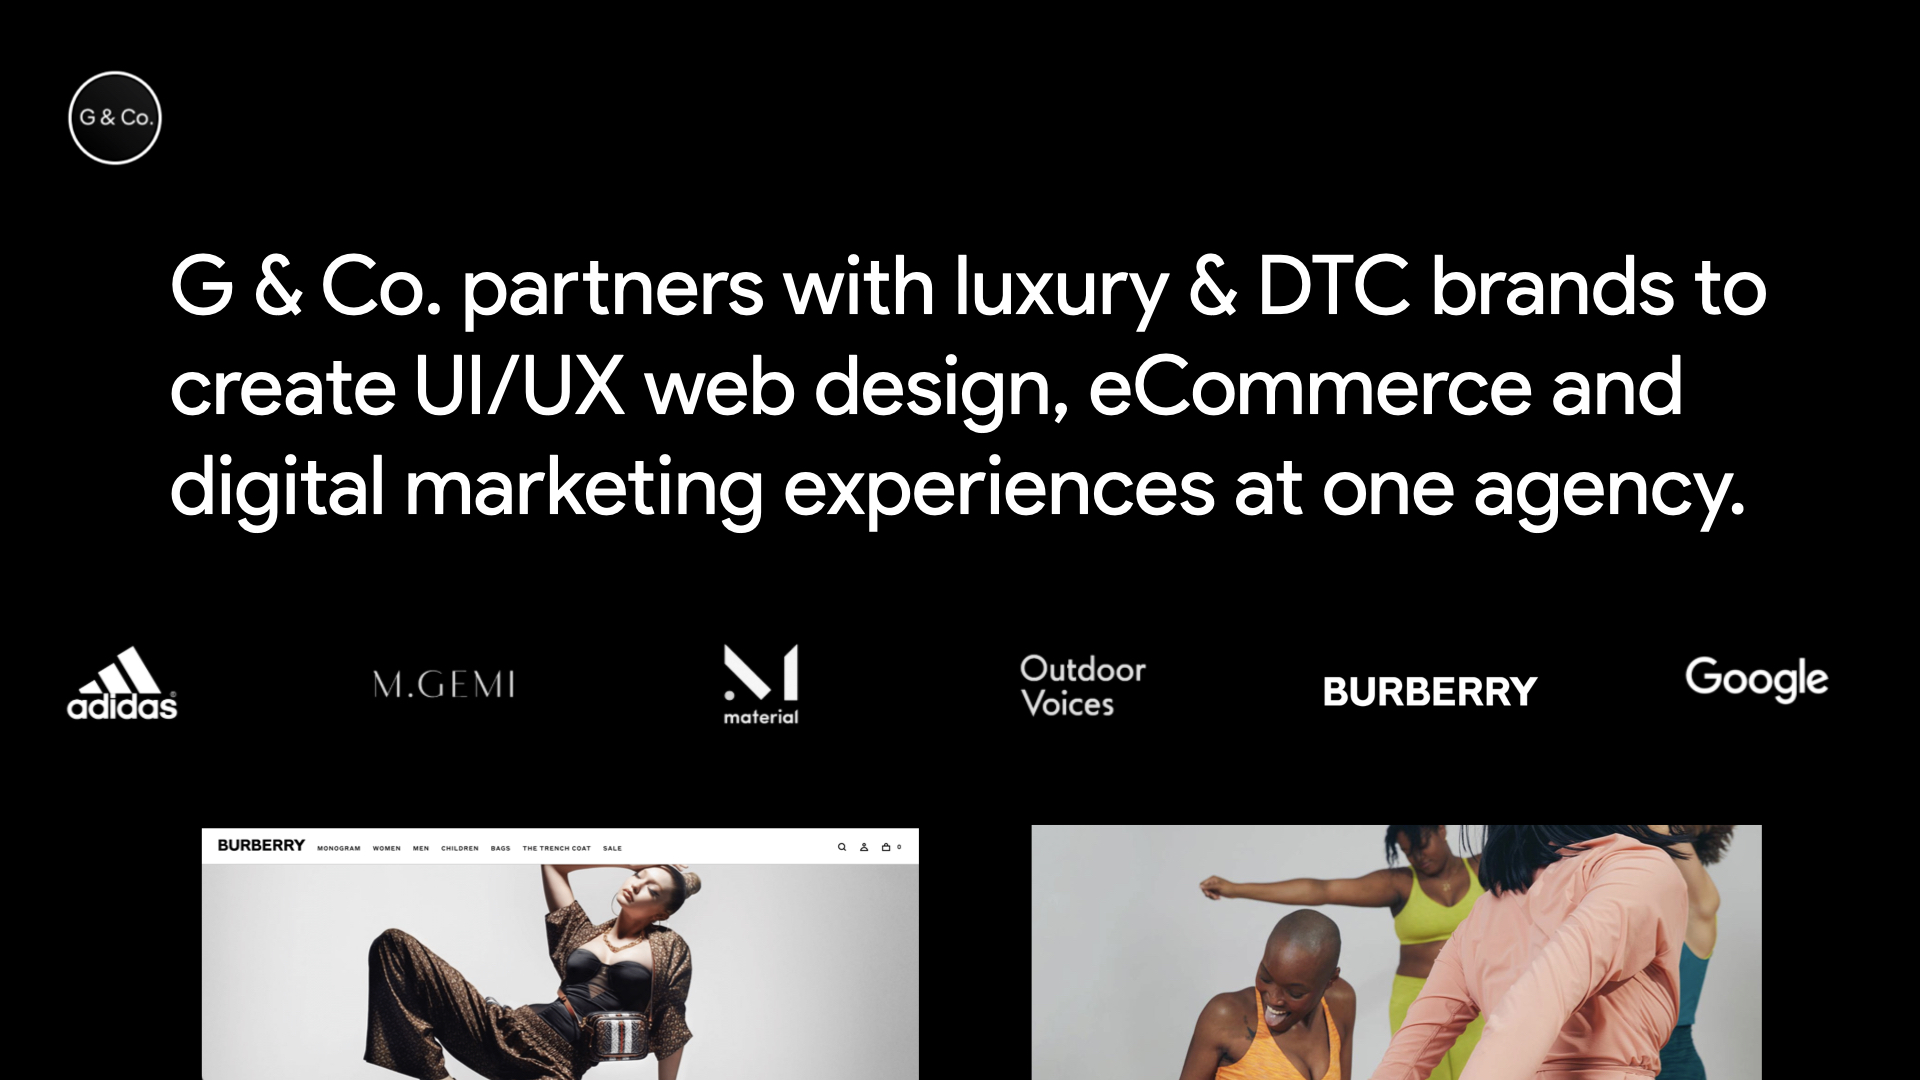 G & Co. UI/UX design and eCommerce agency: Specializing in DTC & luxury brands